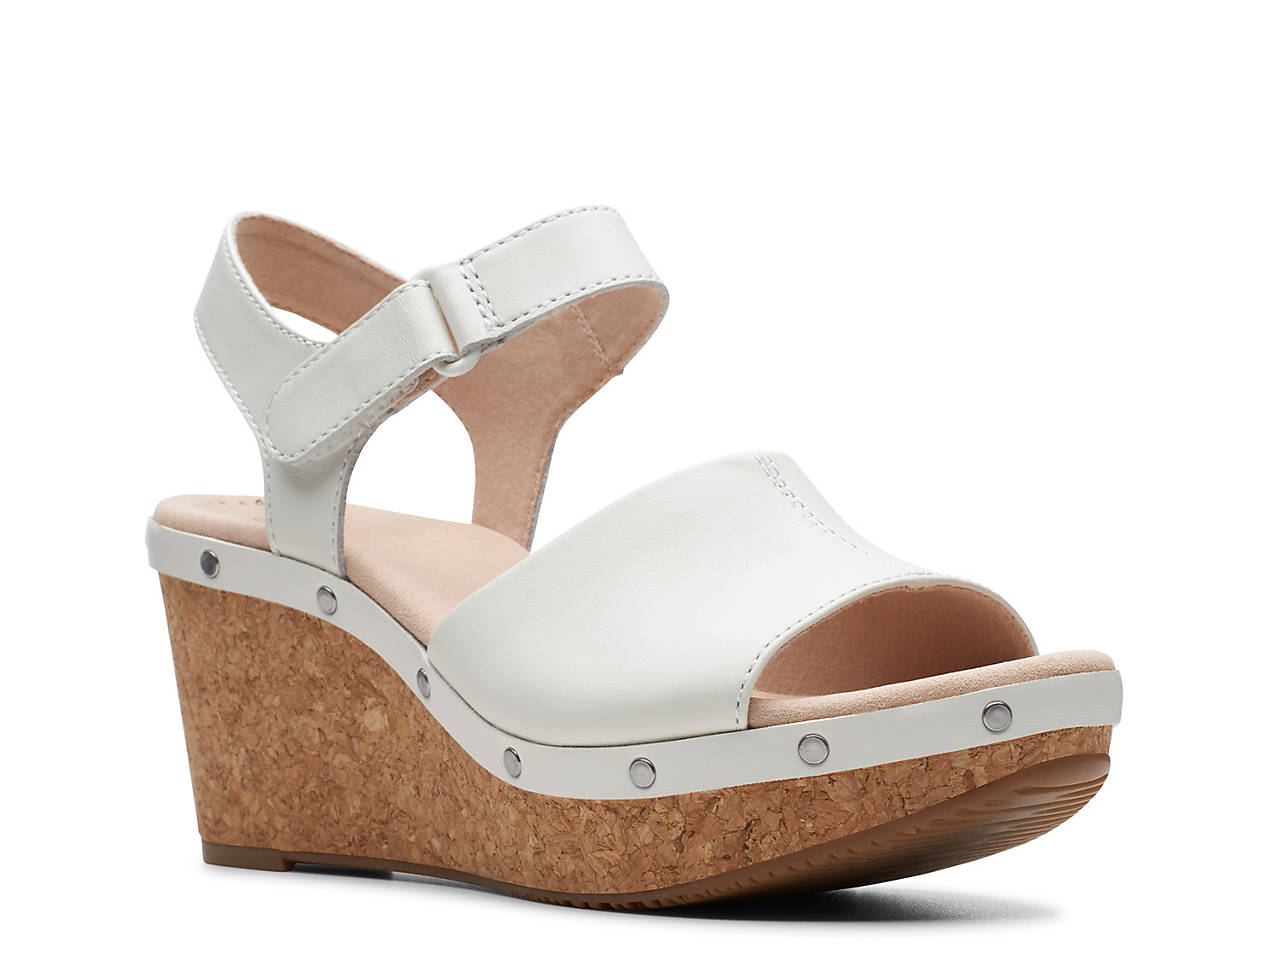 7785a31b5aa Clarks Annadel Clover Wedge Sandal Women s Shoes